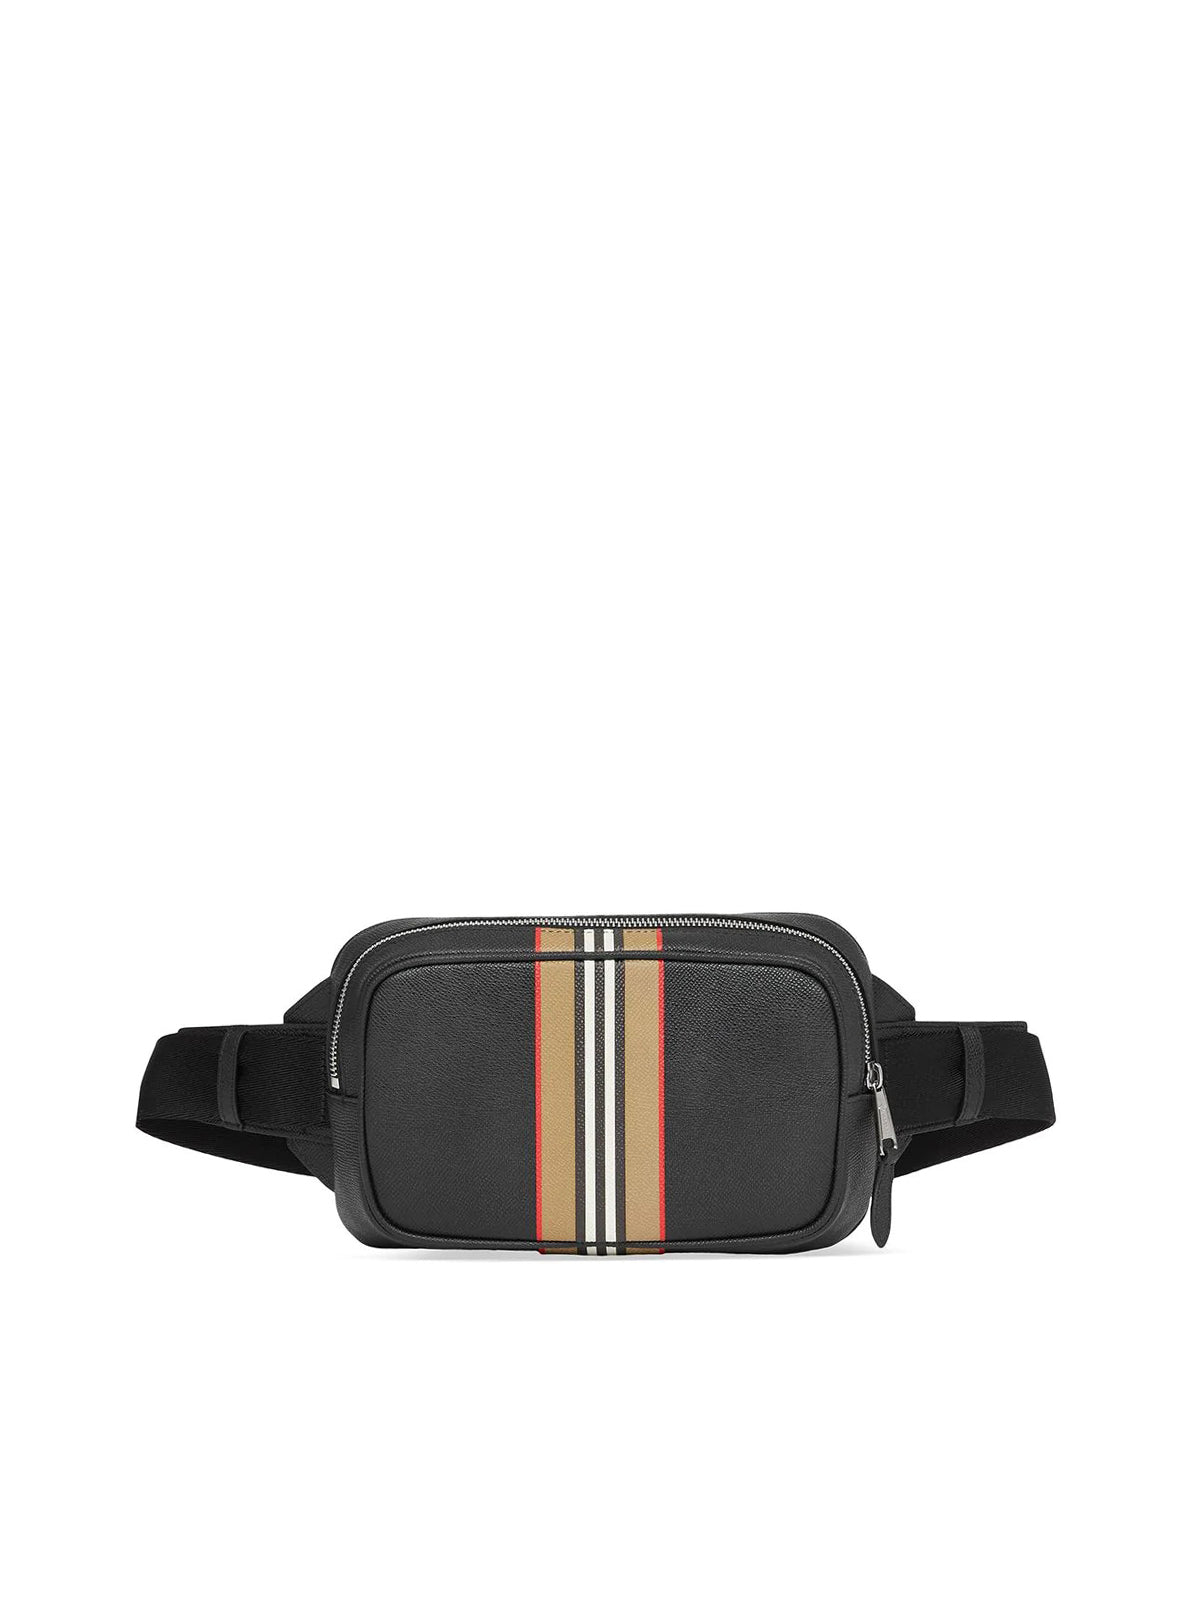 Burberry Stripe Motif Detail Leather Belt Bag In Black